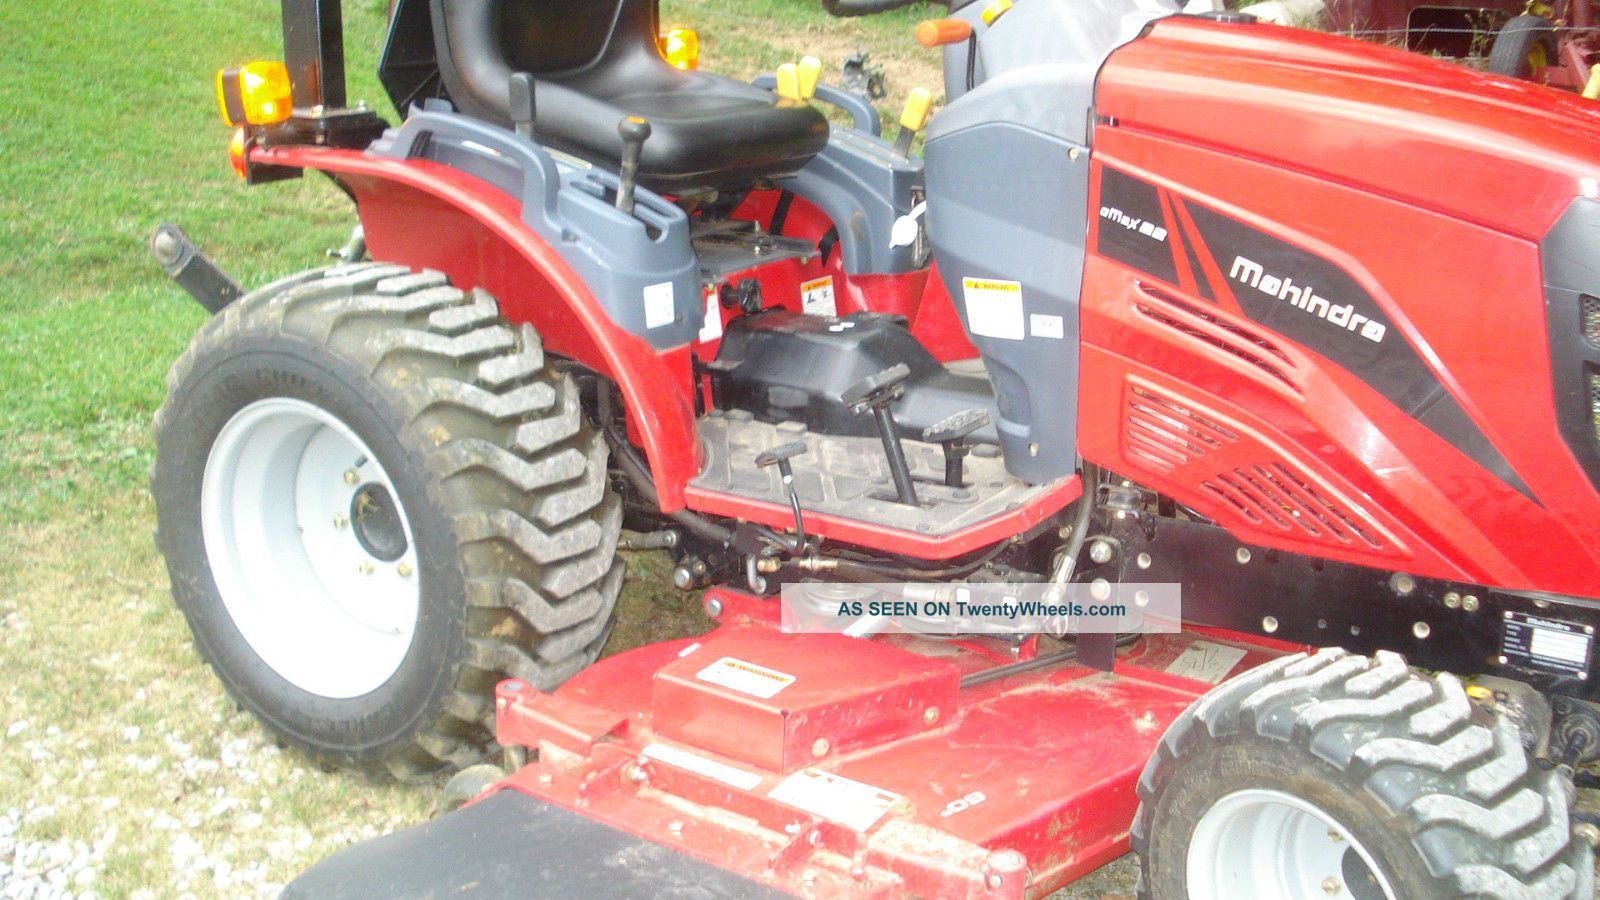 Story moreover Trail King Trailer Wiring Diagram moreover 45d5MOldlm0 furthermore 4756 1977 international harvester cub tractor wbelly mower in mississippi in addition Choosing A Dump Trailer. on belly dump semi trailers